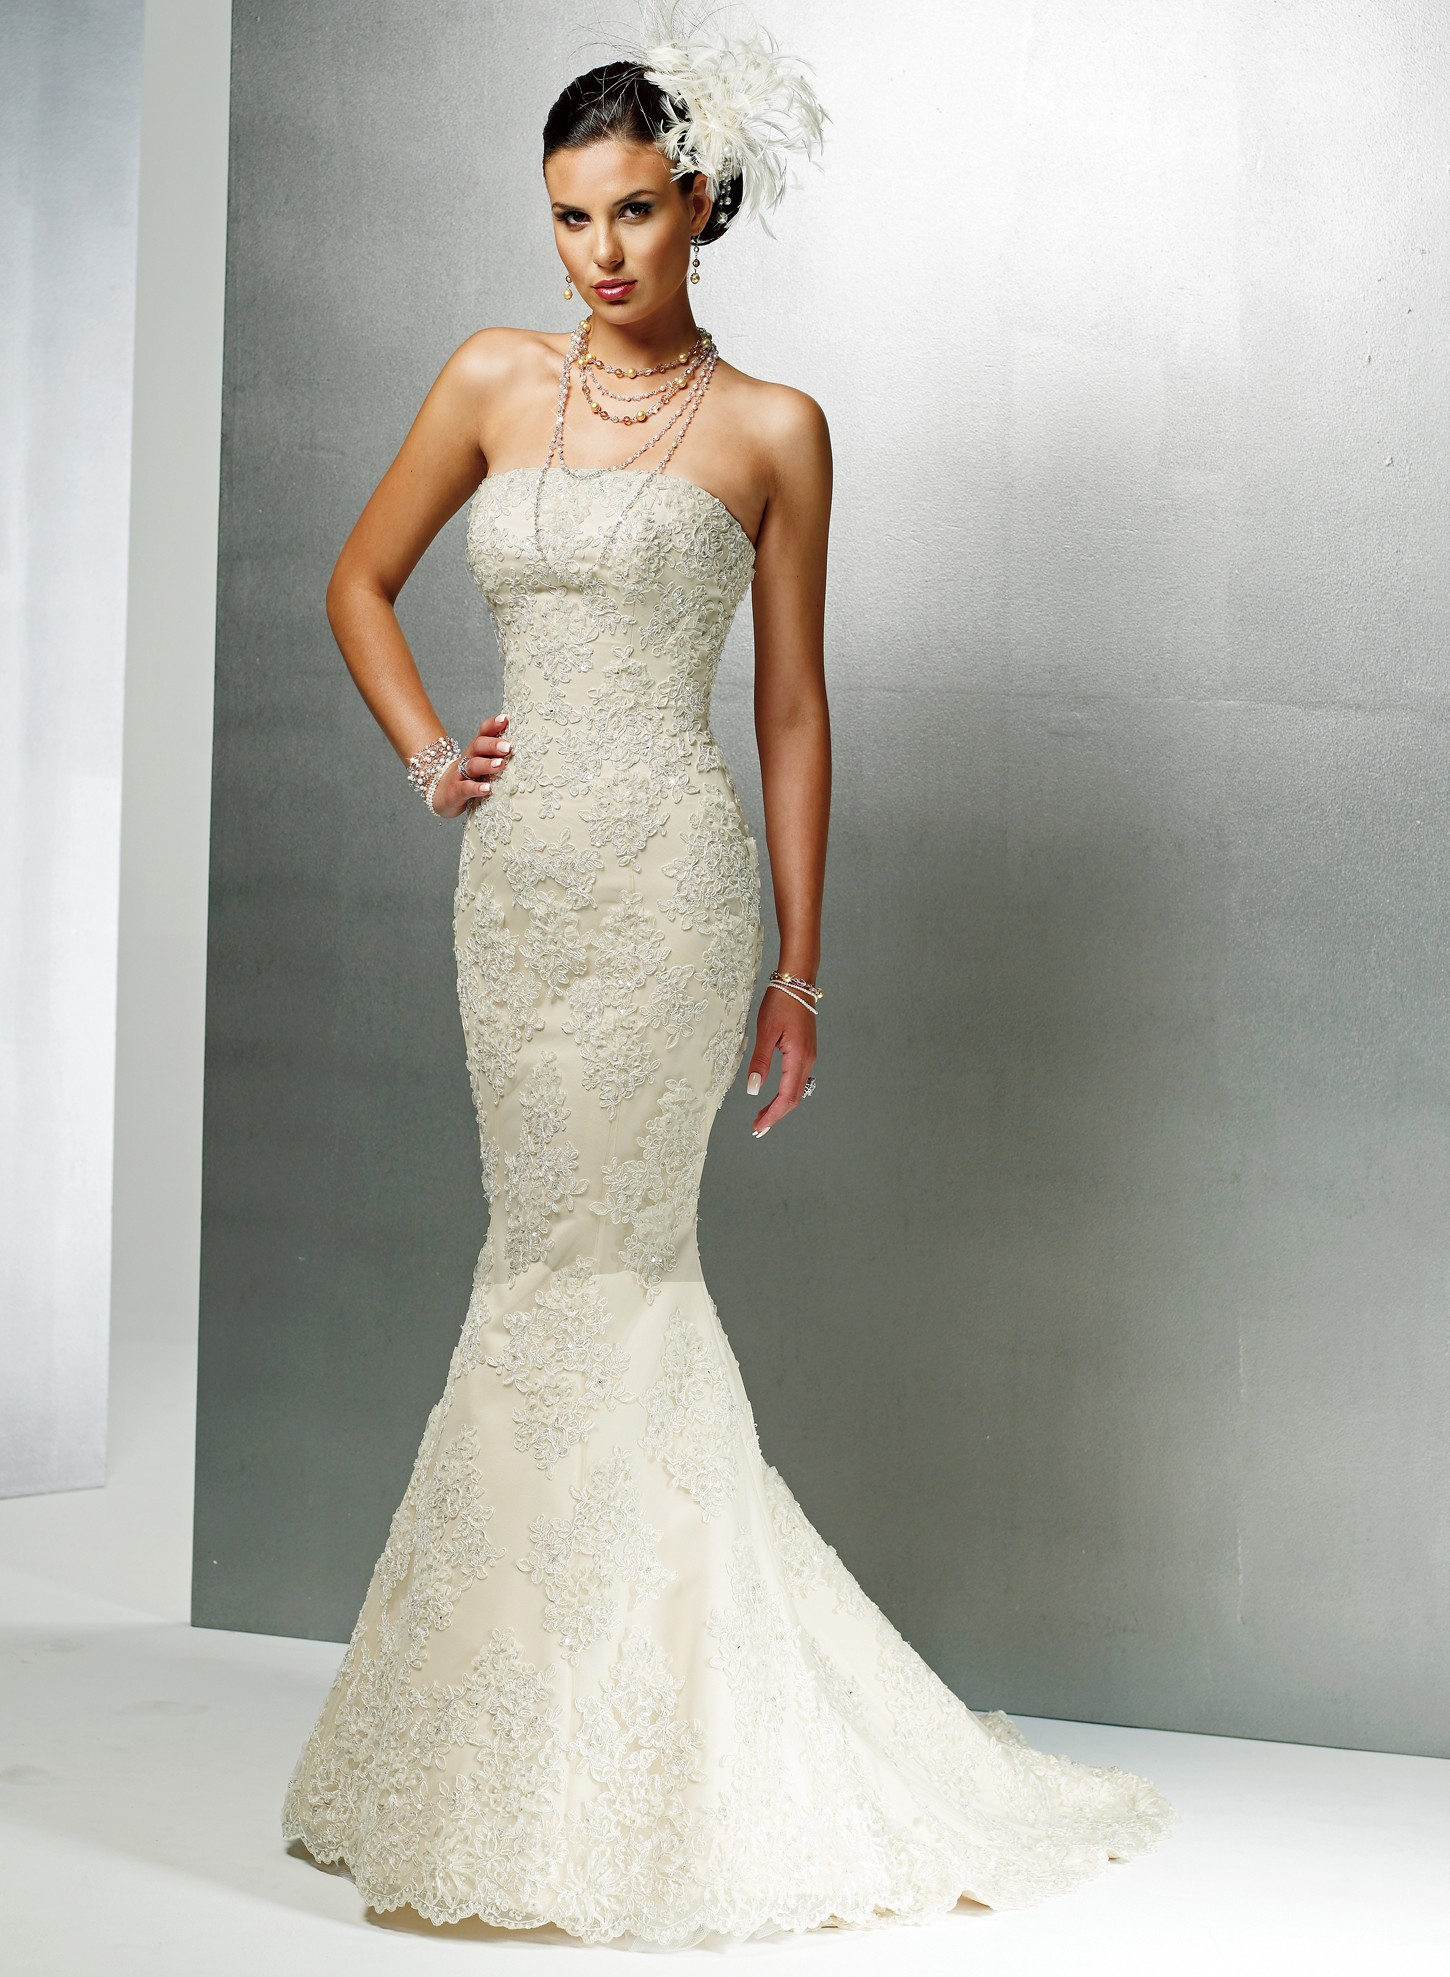 Mermaid Wedding Dress  Ideas 2